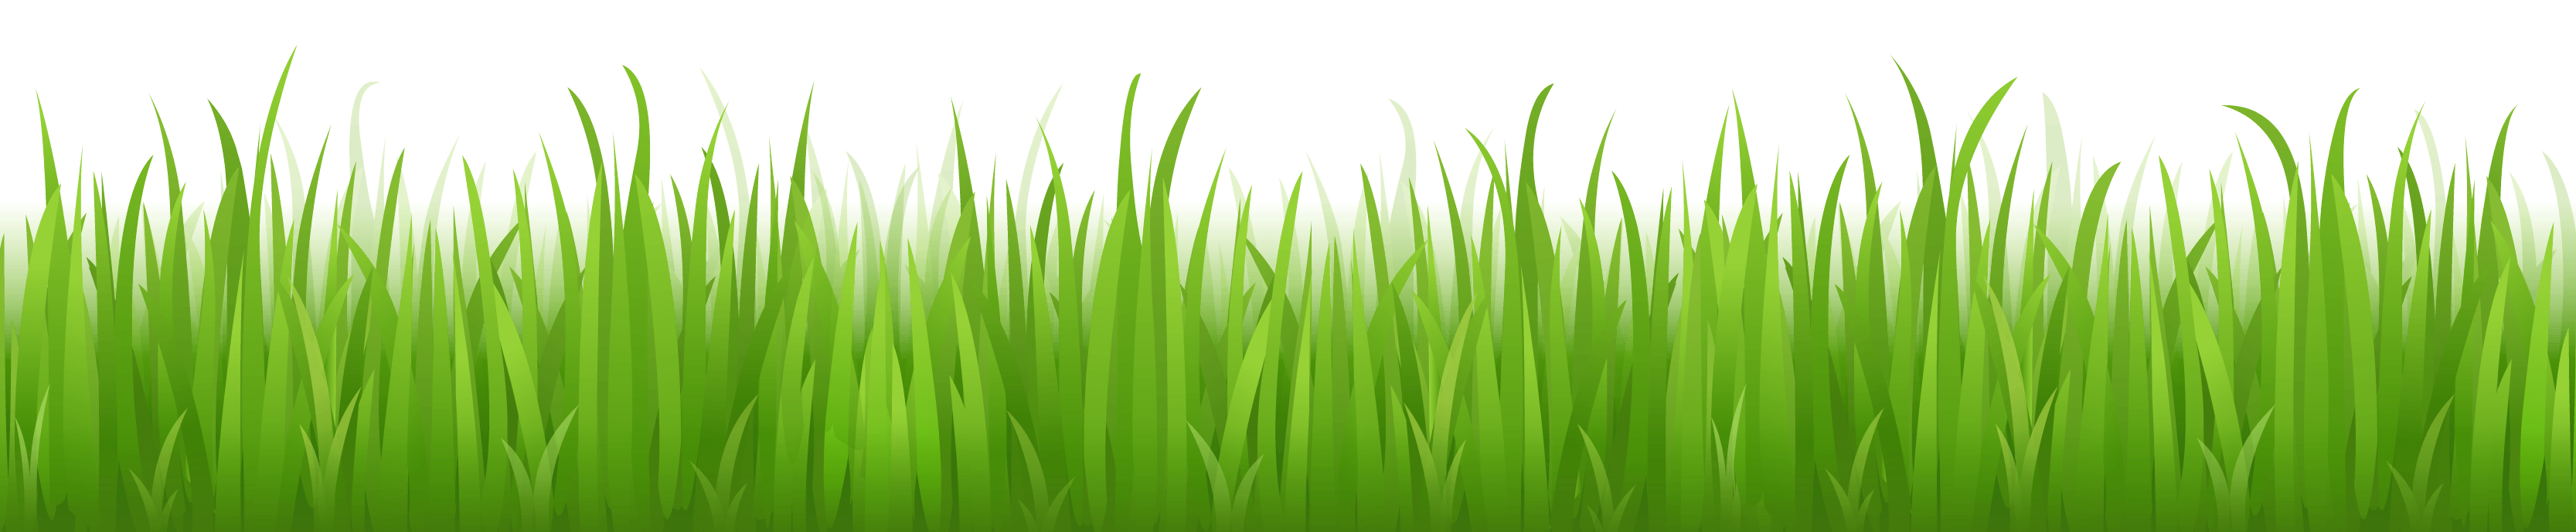 Grass cartoon png. Download image green picture